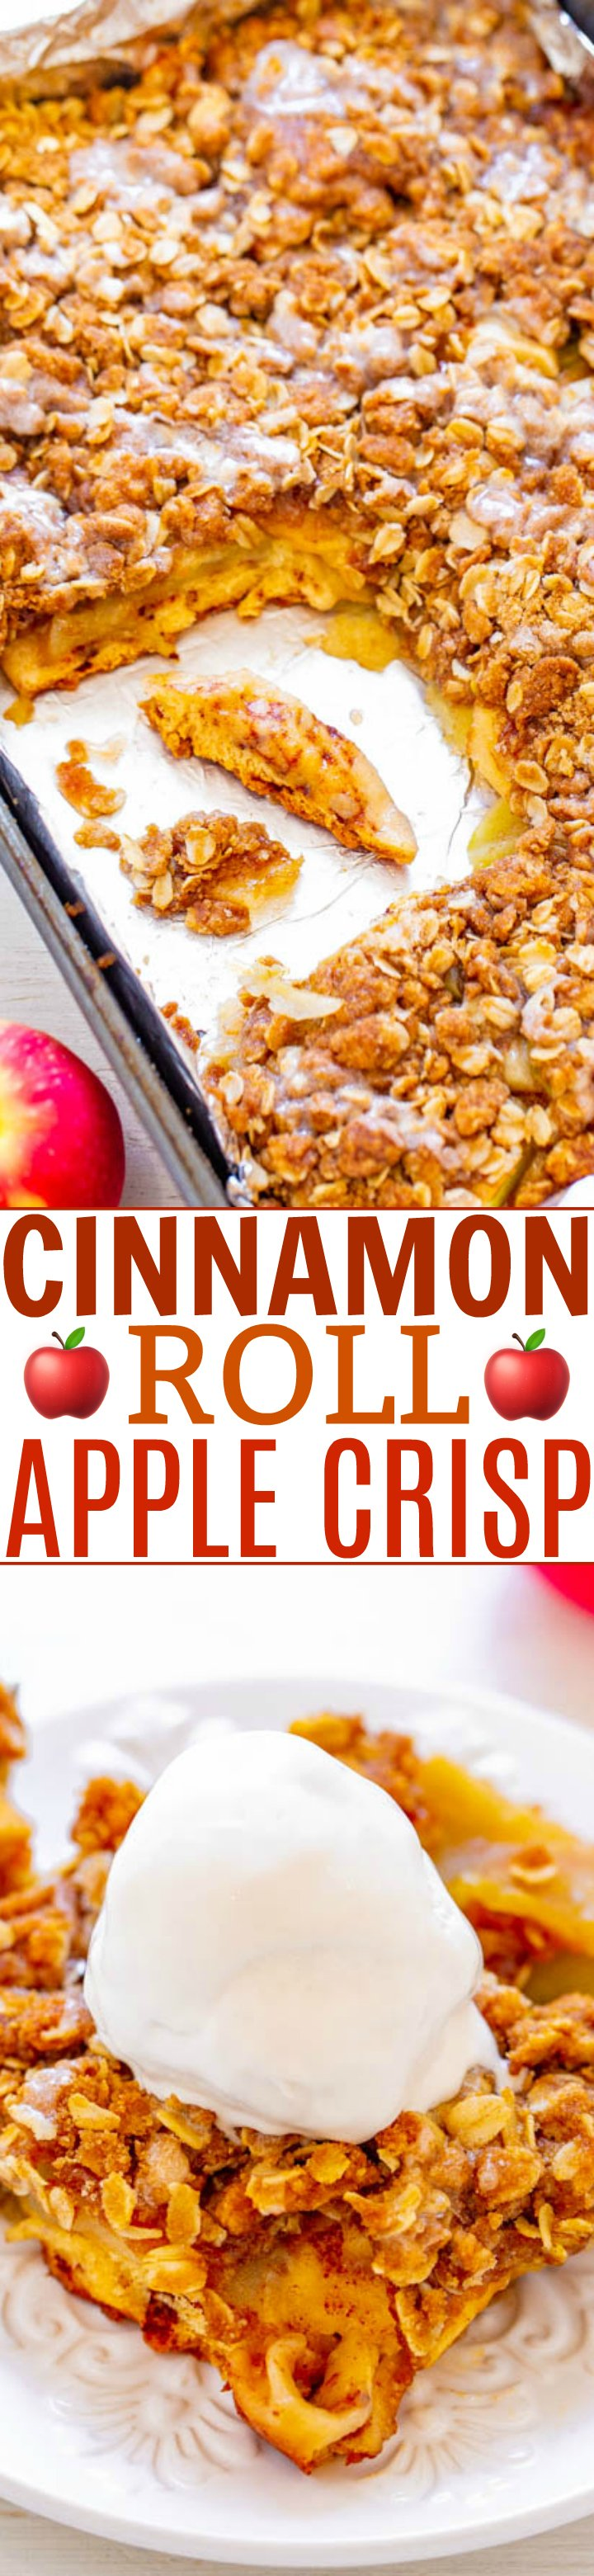 Cinnamon Roll Apple Crisp - A layer of cinnamon rolls topped with apples and a crunchy oatmeal crumble makes this the ULTIMATE apple crisp!! EASY, ready in 40 minutes, and tastes AMAZING!!